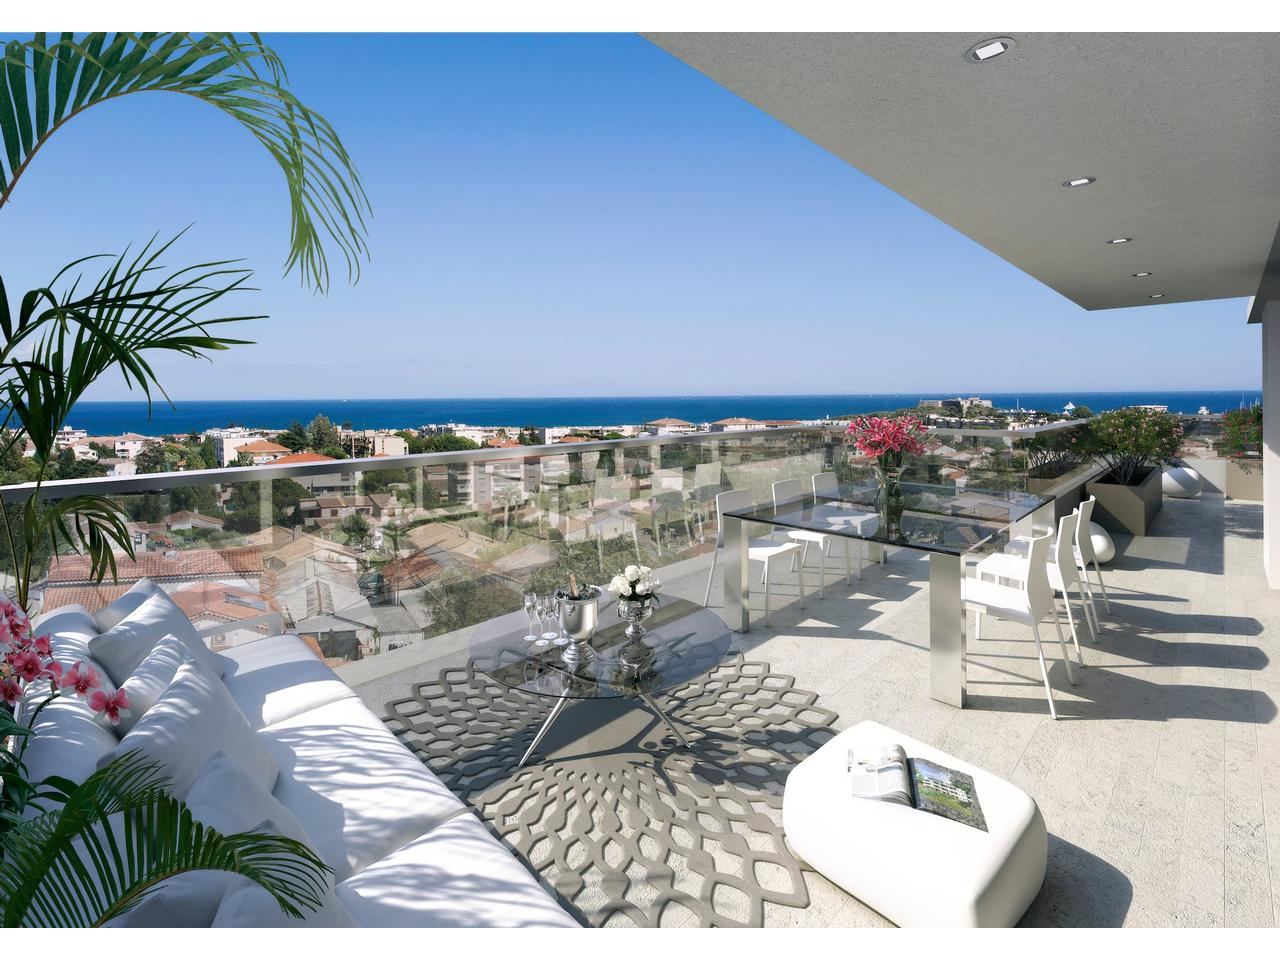 Vente Appartement Antibes Immobilier Nice Vue Mer Appartement Antibes Dernier Etage 4 Pieces